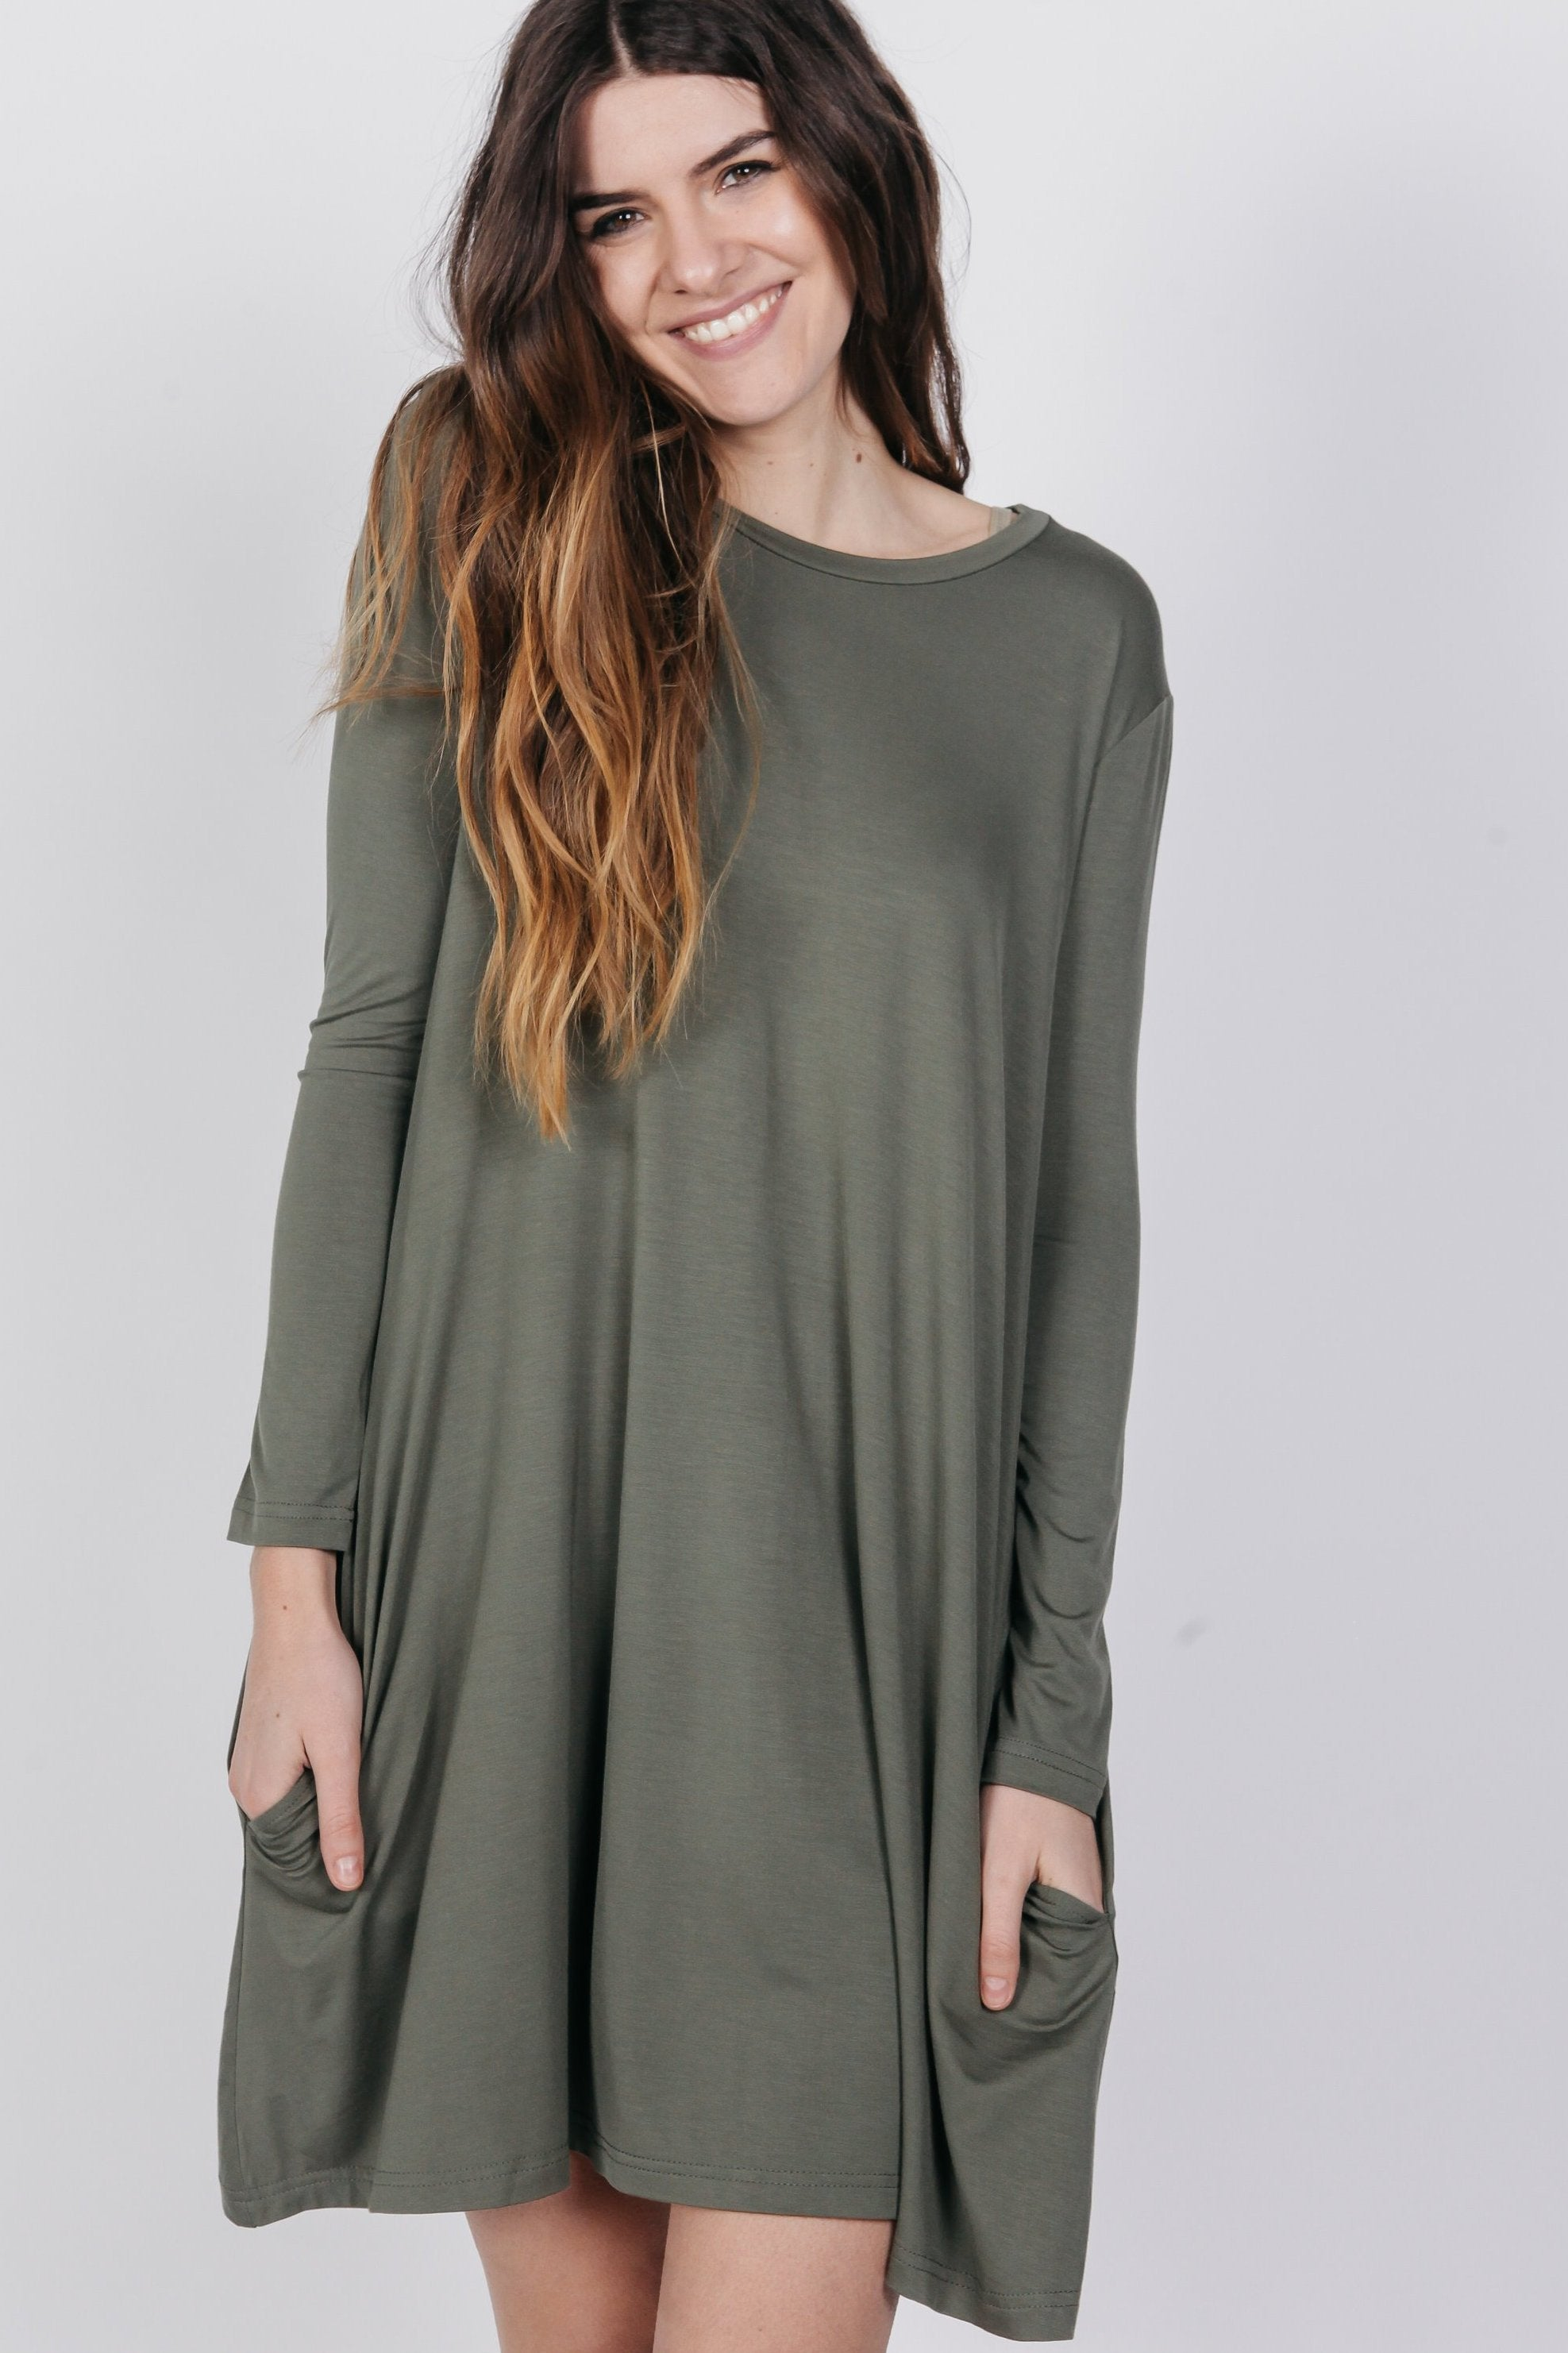 PIKO Long Sleeve Swing Dress - Army Dresses - Vinnie Louise